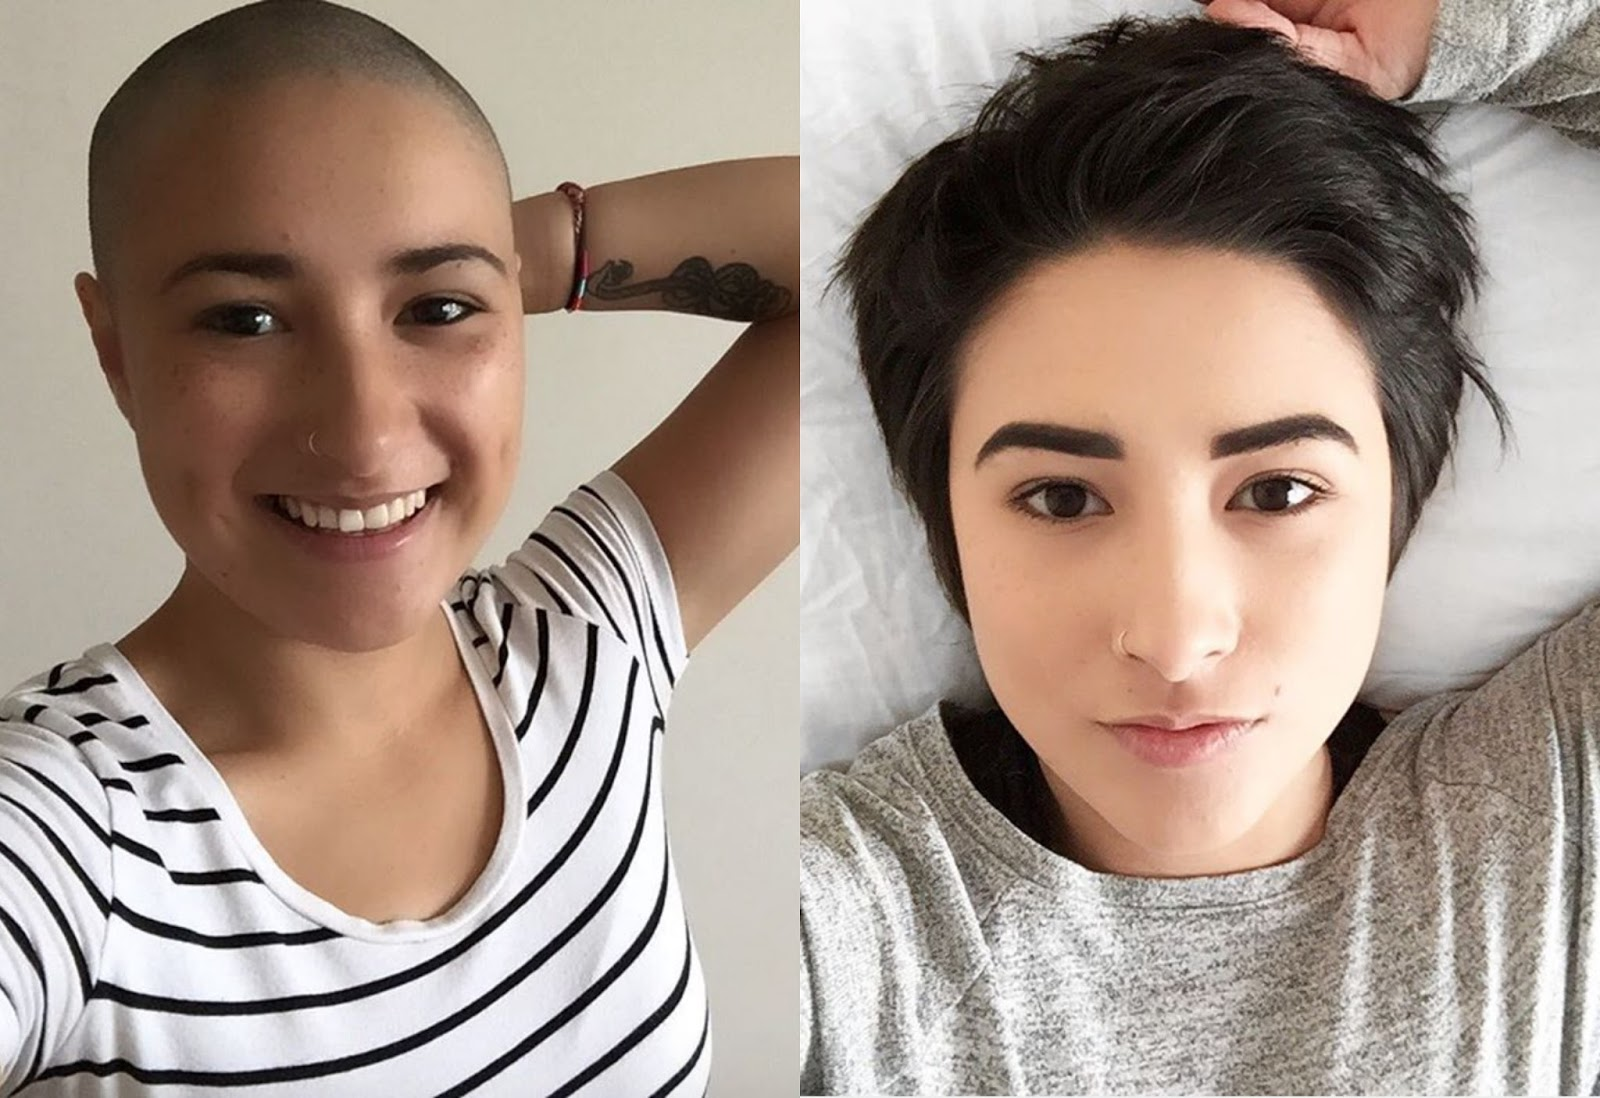 macmillan cancer support, brave the shave, uk lifestyle blogger